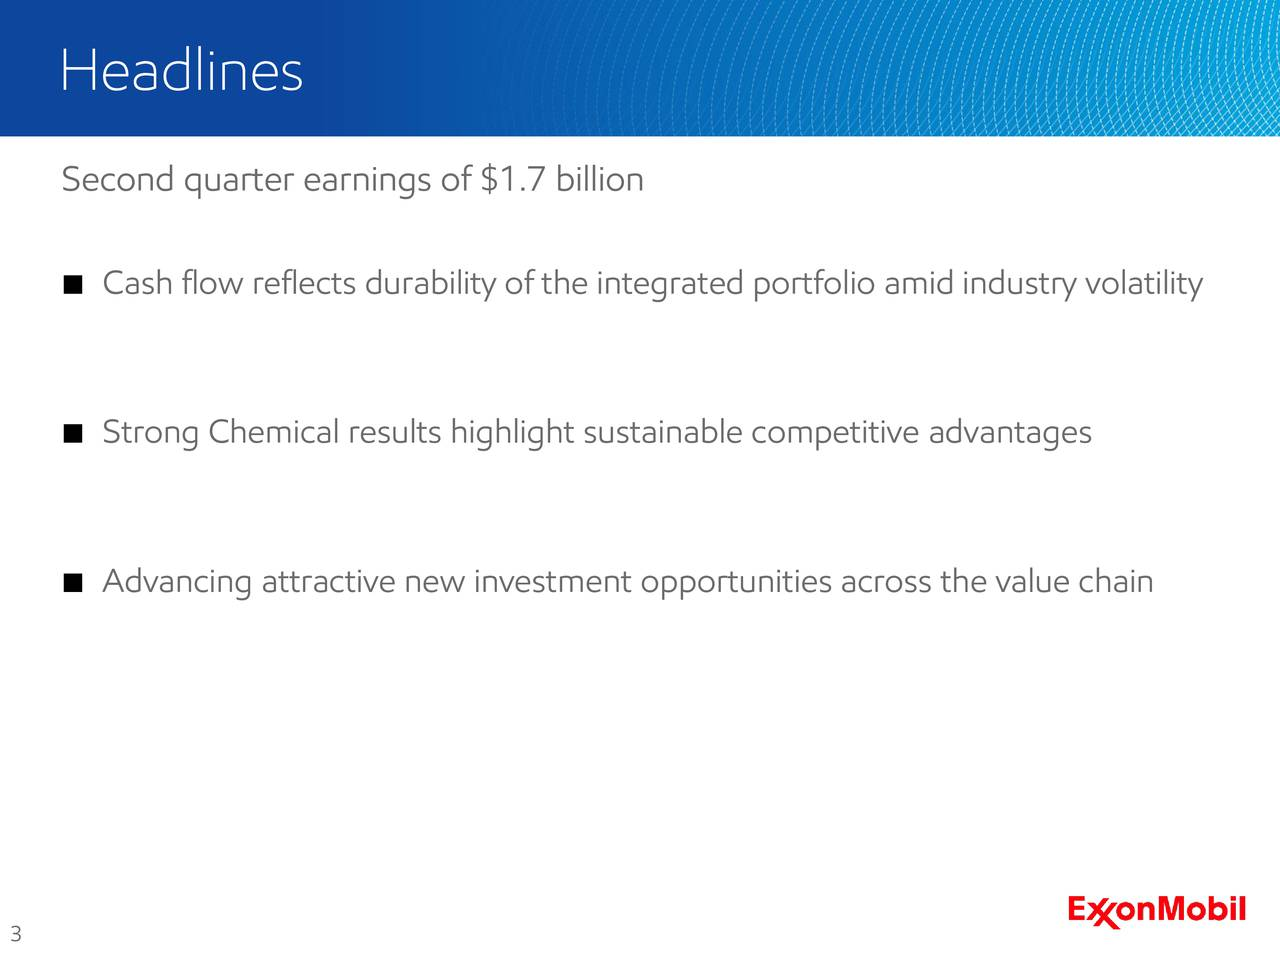 Second quarter earnings of $1.7 billion Cash flow reflects durability of the integrated portfolio amid industry volatility Strong Chemical results highlight sustainable competitive advantages Advancing attractive new investment opportunities across the value chain 3